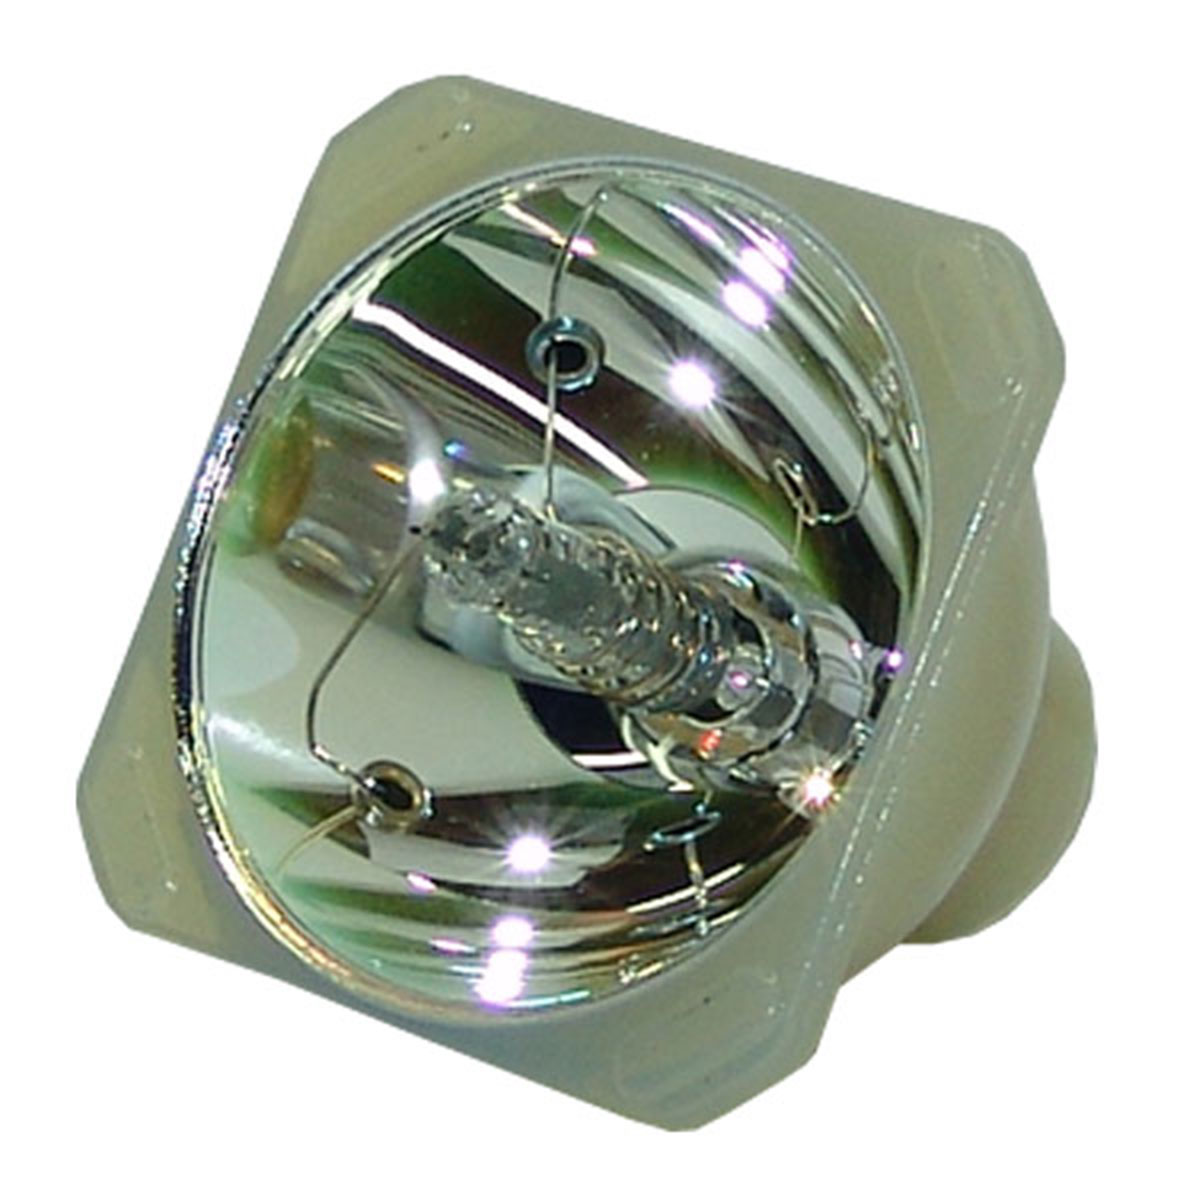 Original Philips Projector Lamp Replacement for Optoma DS605 (Bulb Only) - image 5 of 5